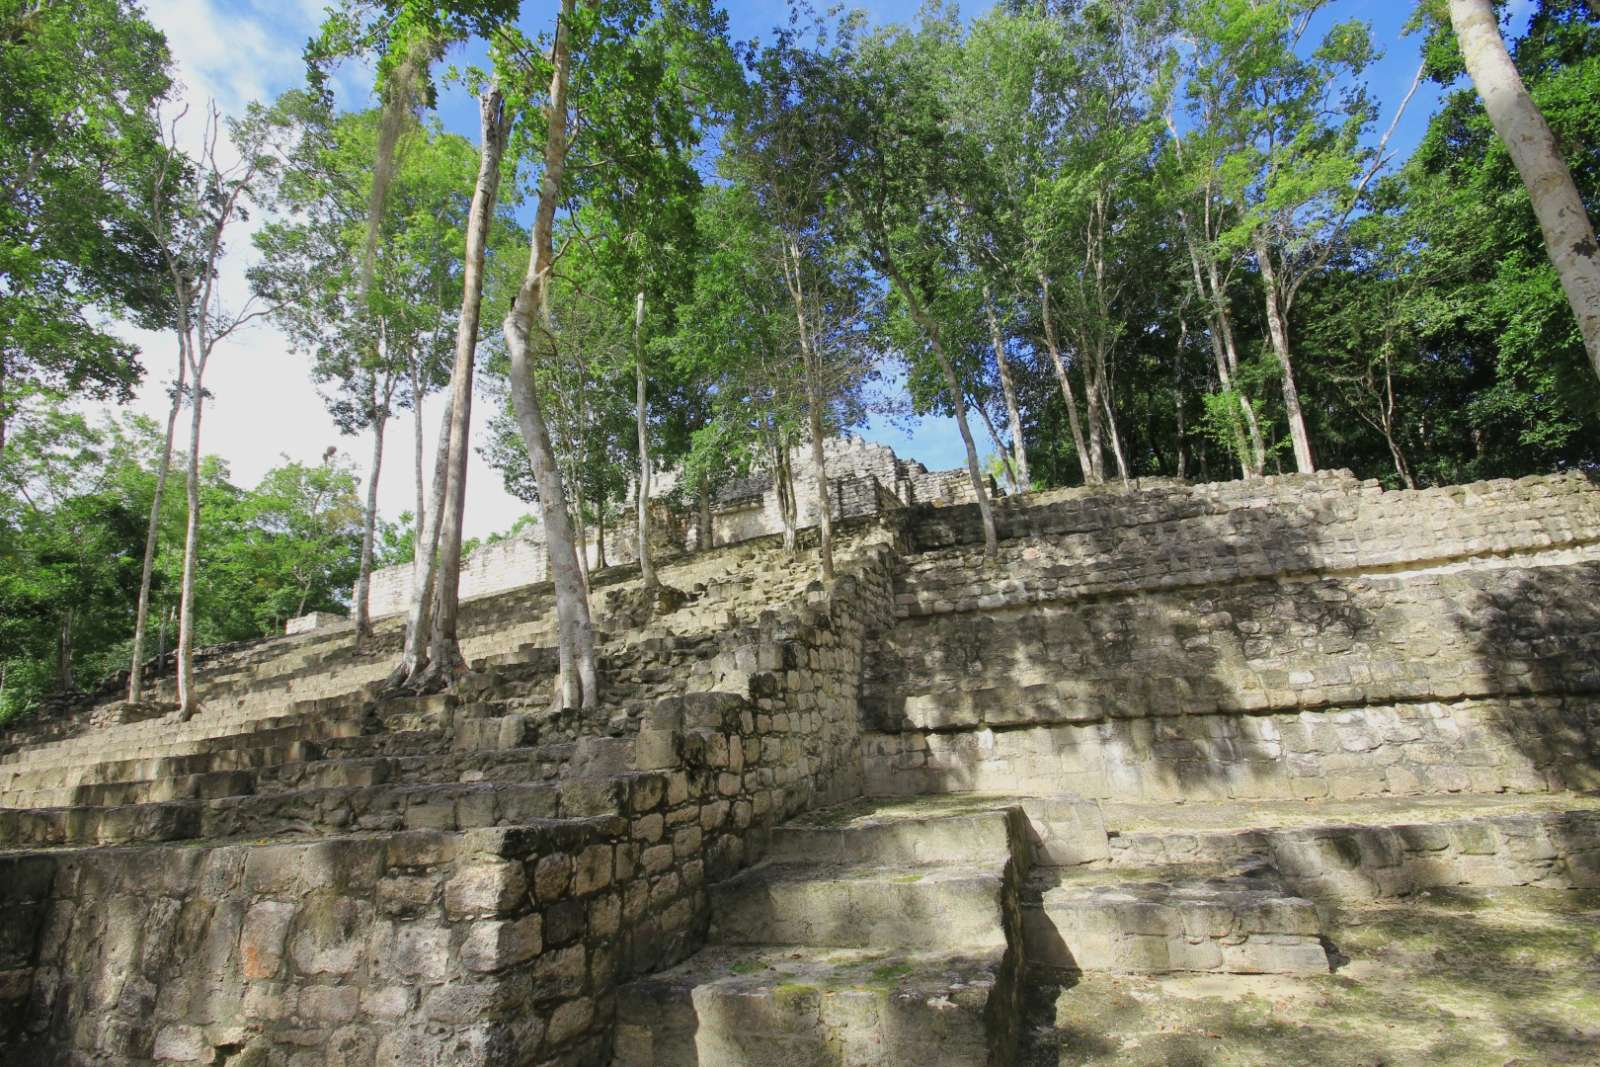 Trees growing through steps at Calakmul in Mexico